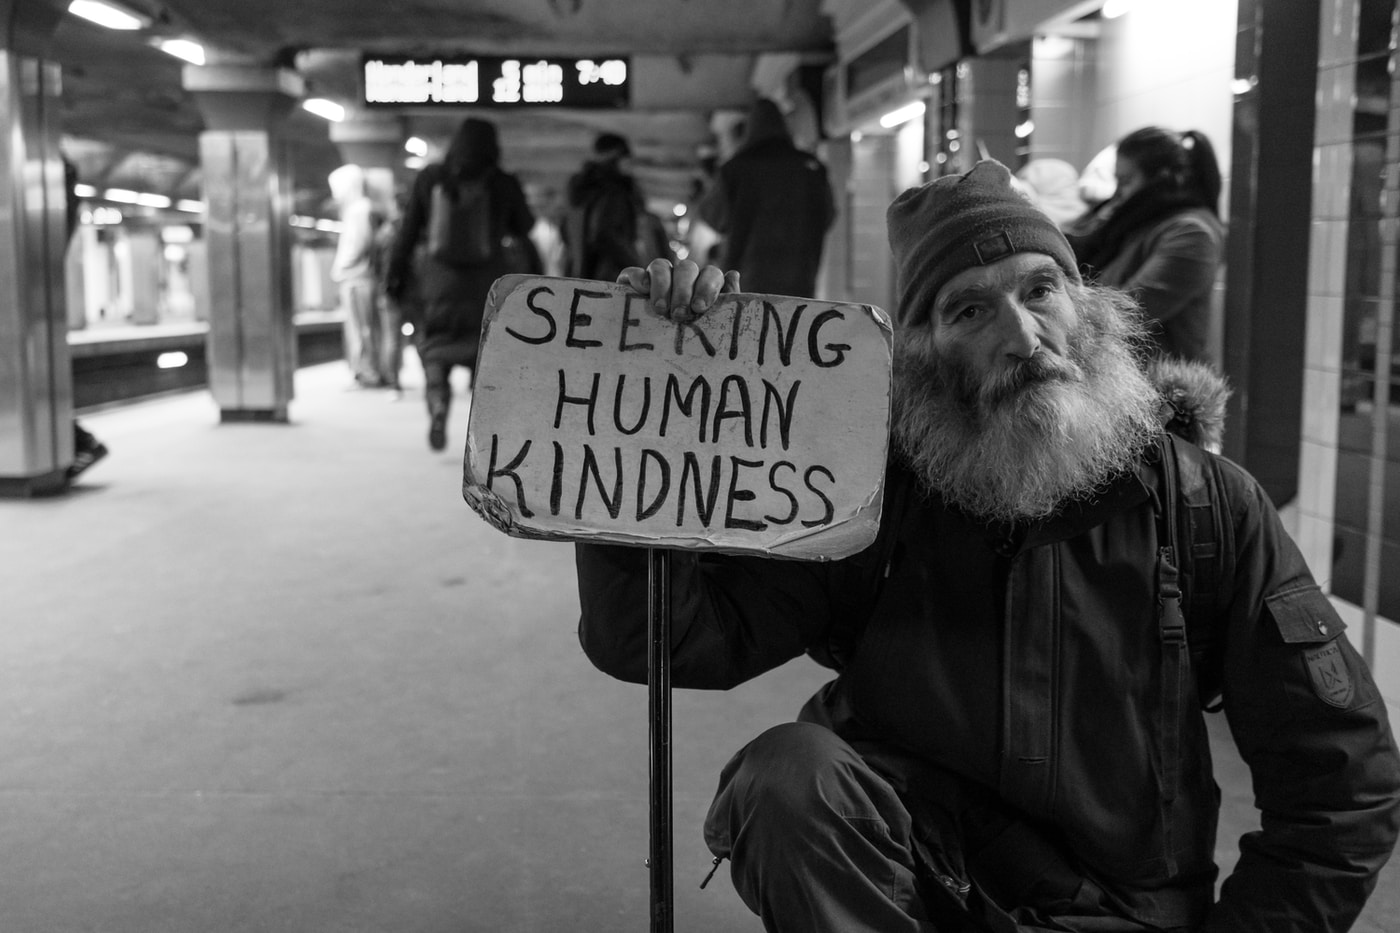 Help the homeless. man holding card with seeking human kindness text